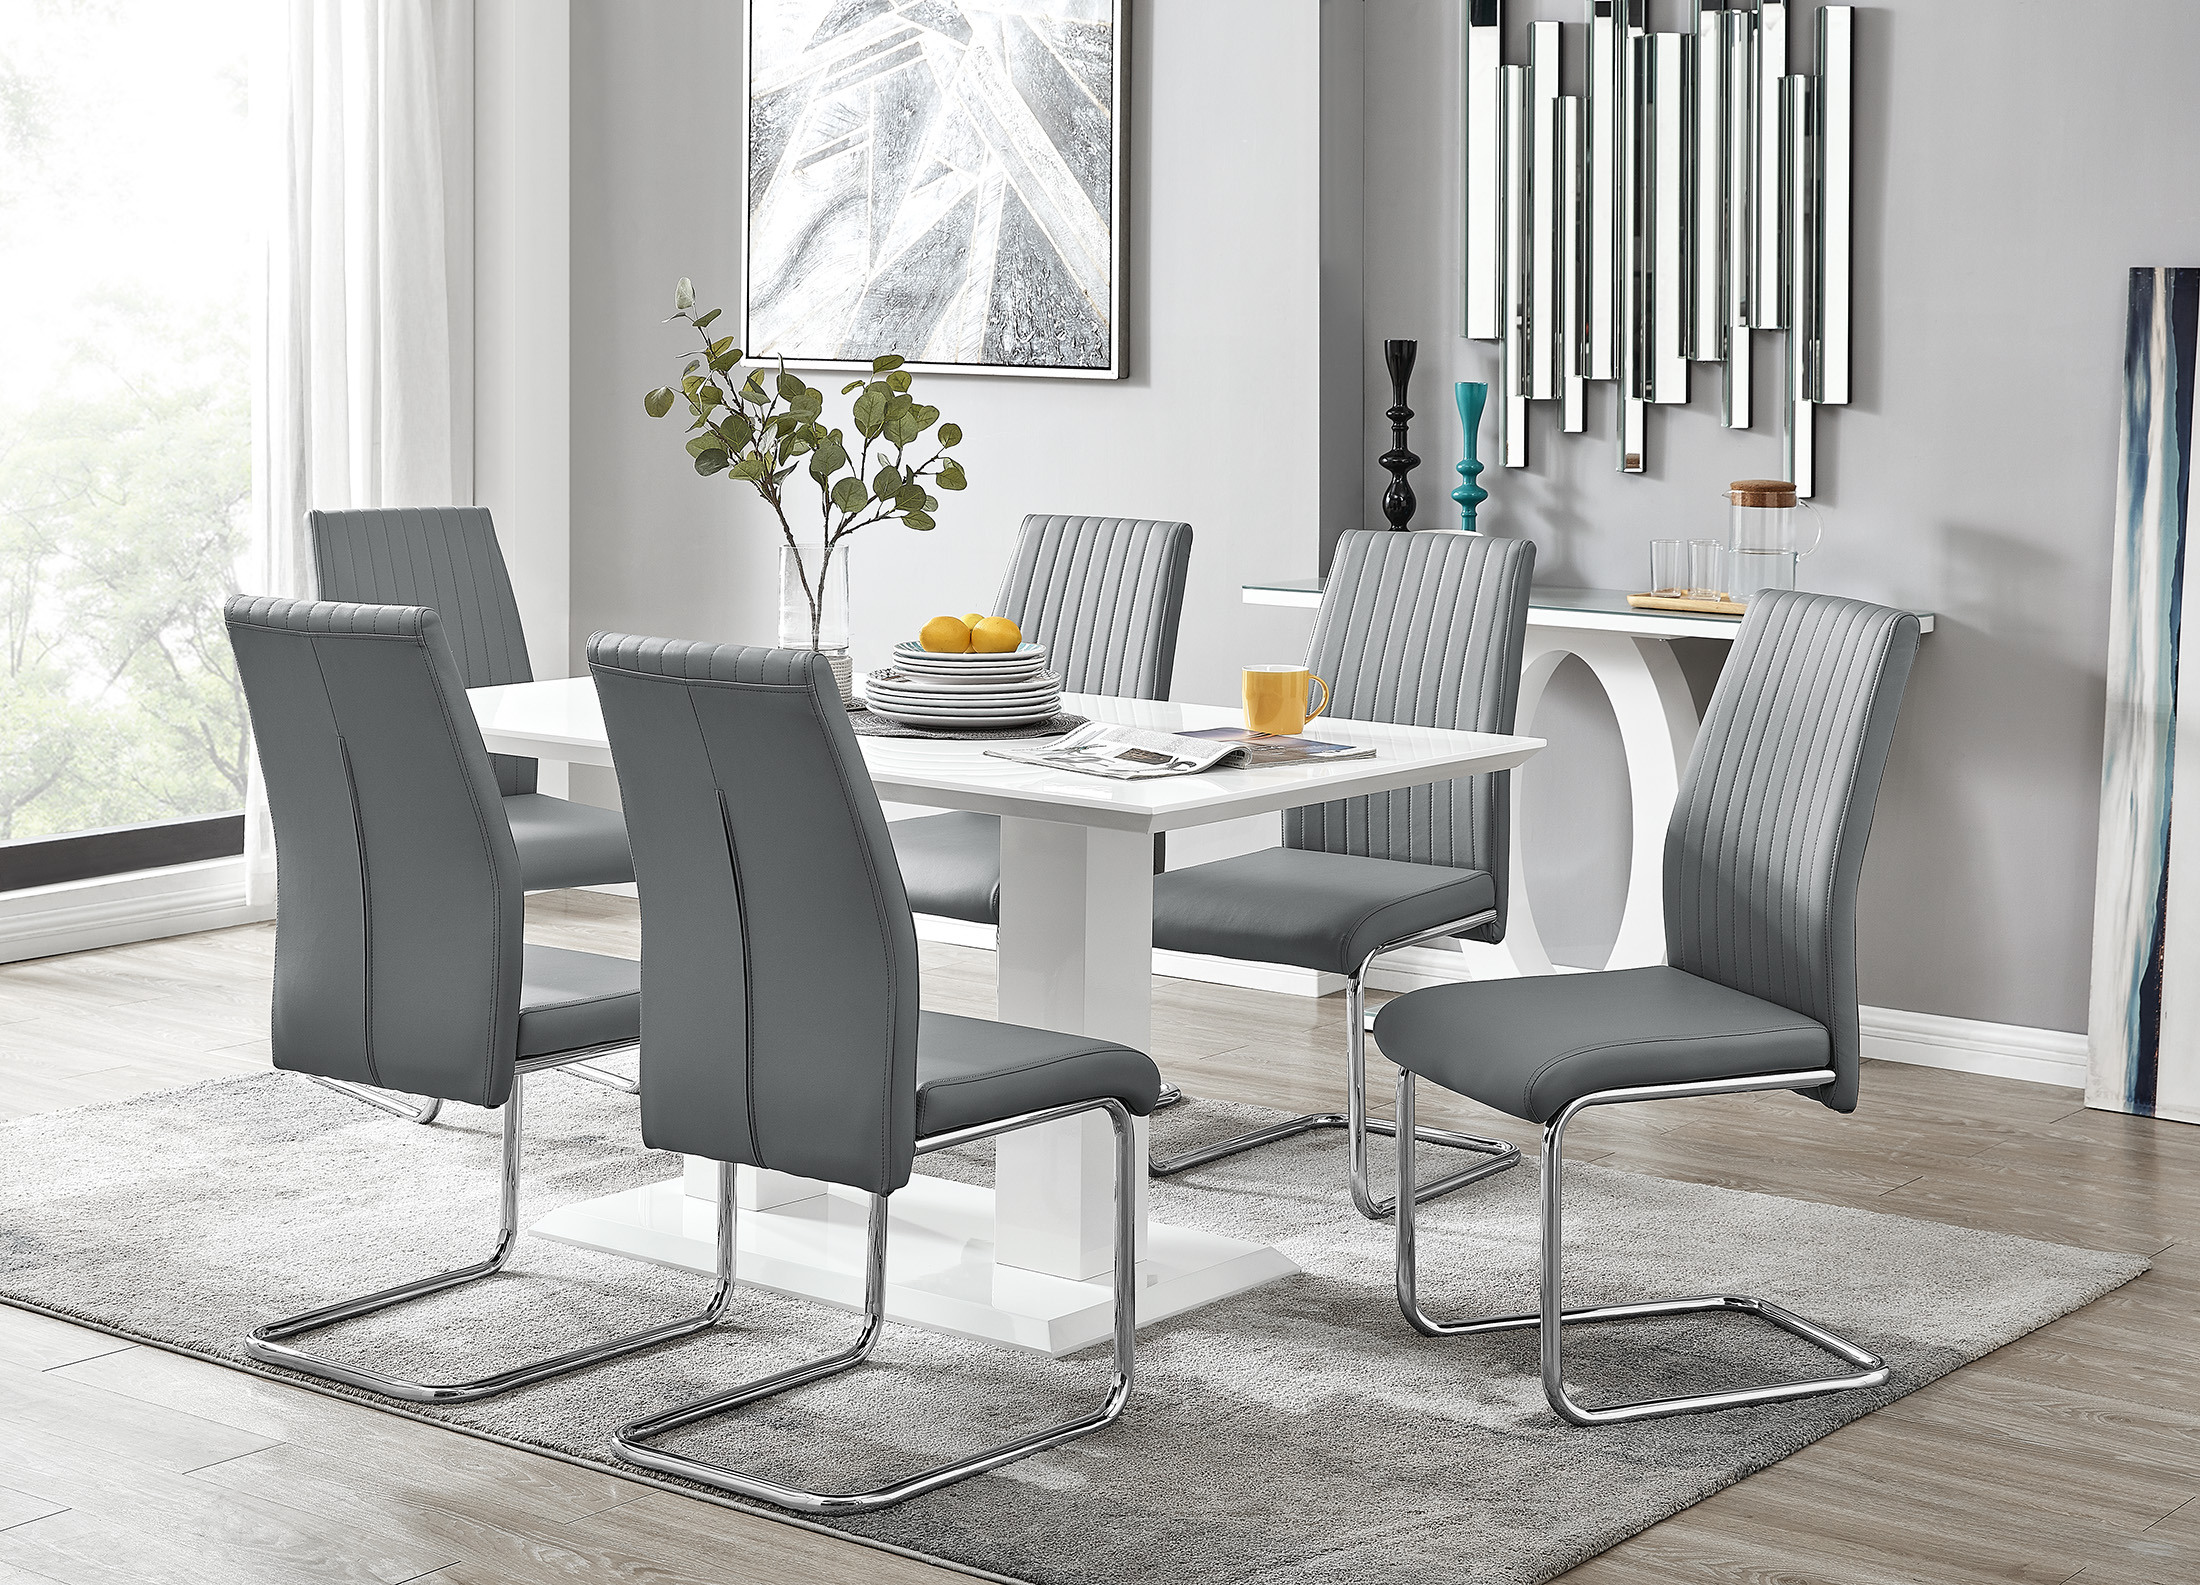 Imperia White High Gloss Dining Table And 9 Lorenzo Dining Chairs Set